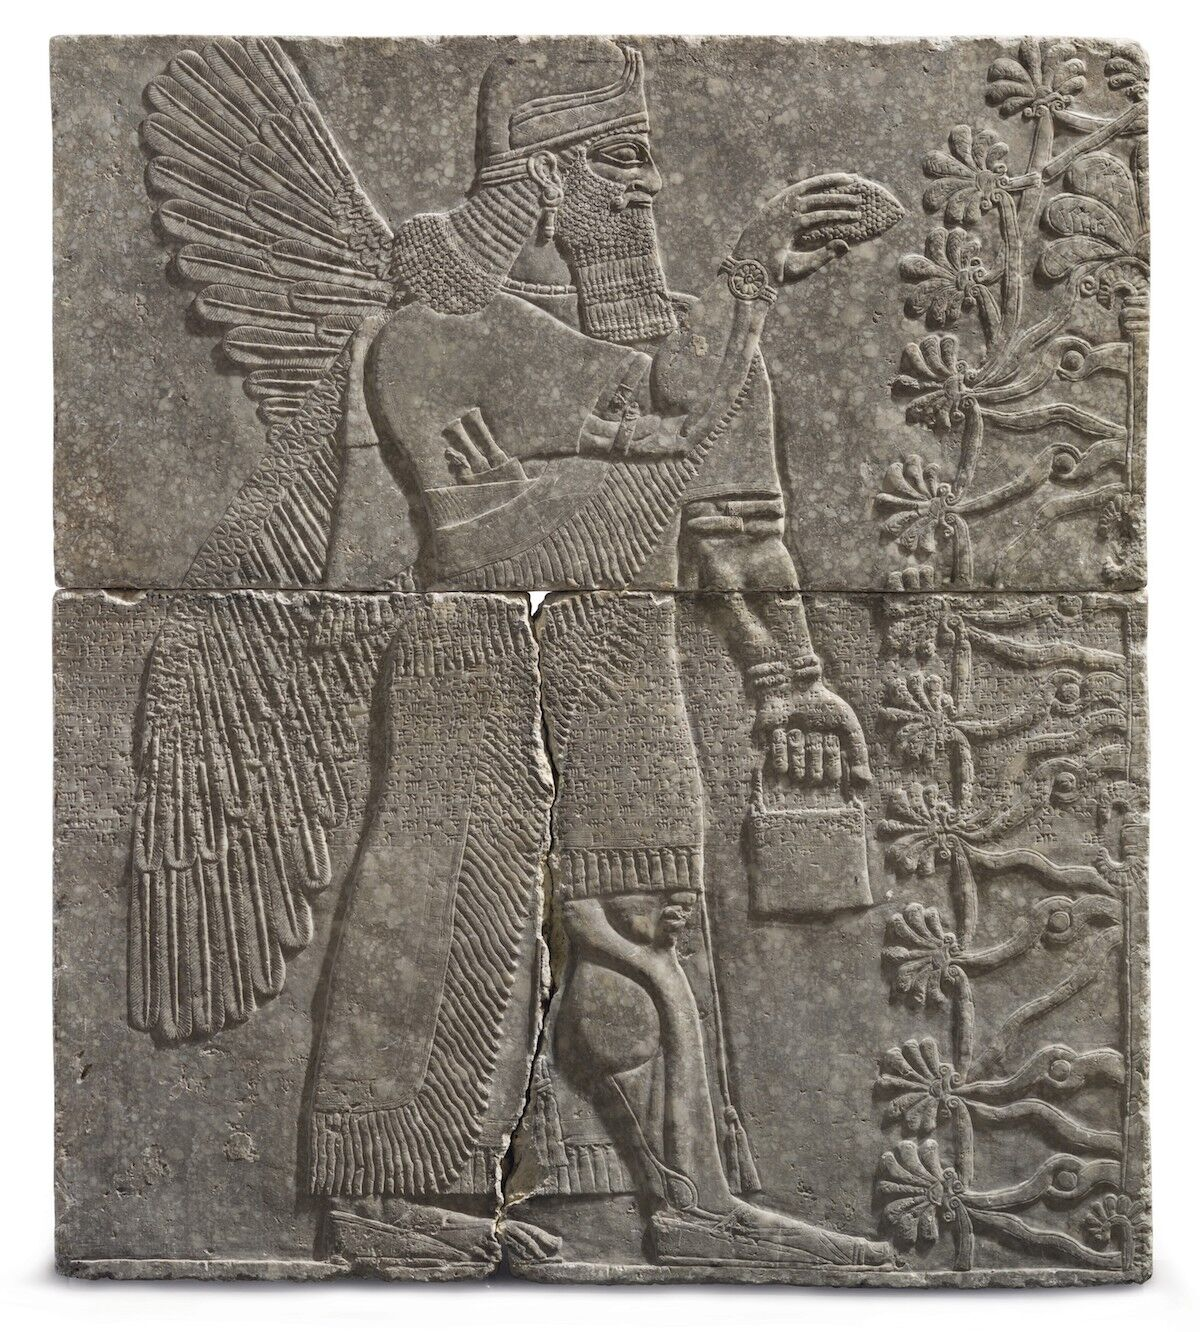 An Assyrian gypsum relief of a Winged Genius, reign of Ashurnasirpal II, circa 883–859 B.C.E. Sold for $30,968,750 at Christie's New York on October 31, 2018. Photo courtesy Christie's Images Ltd. 2018.